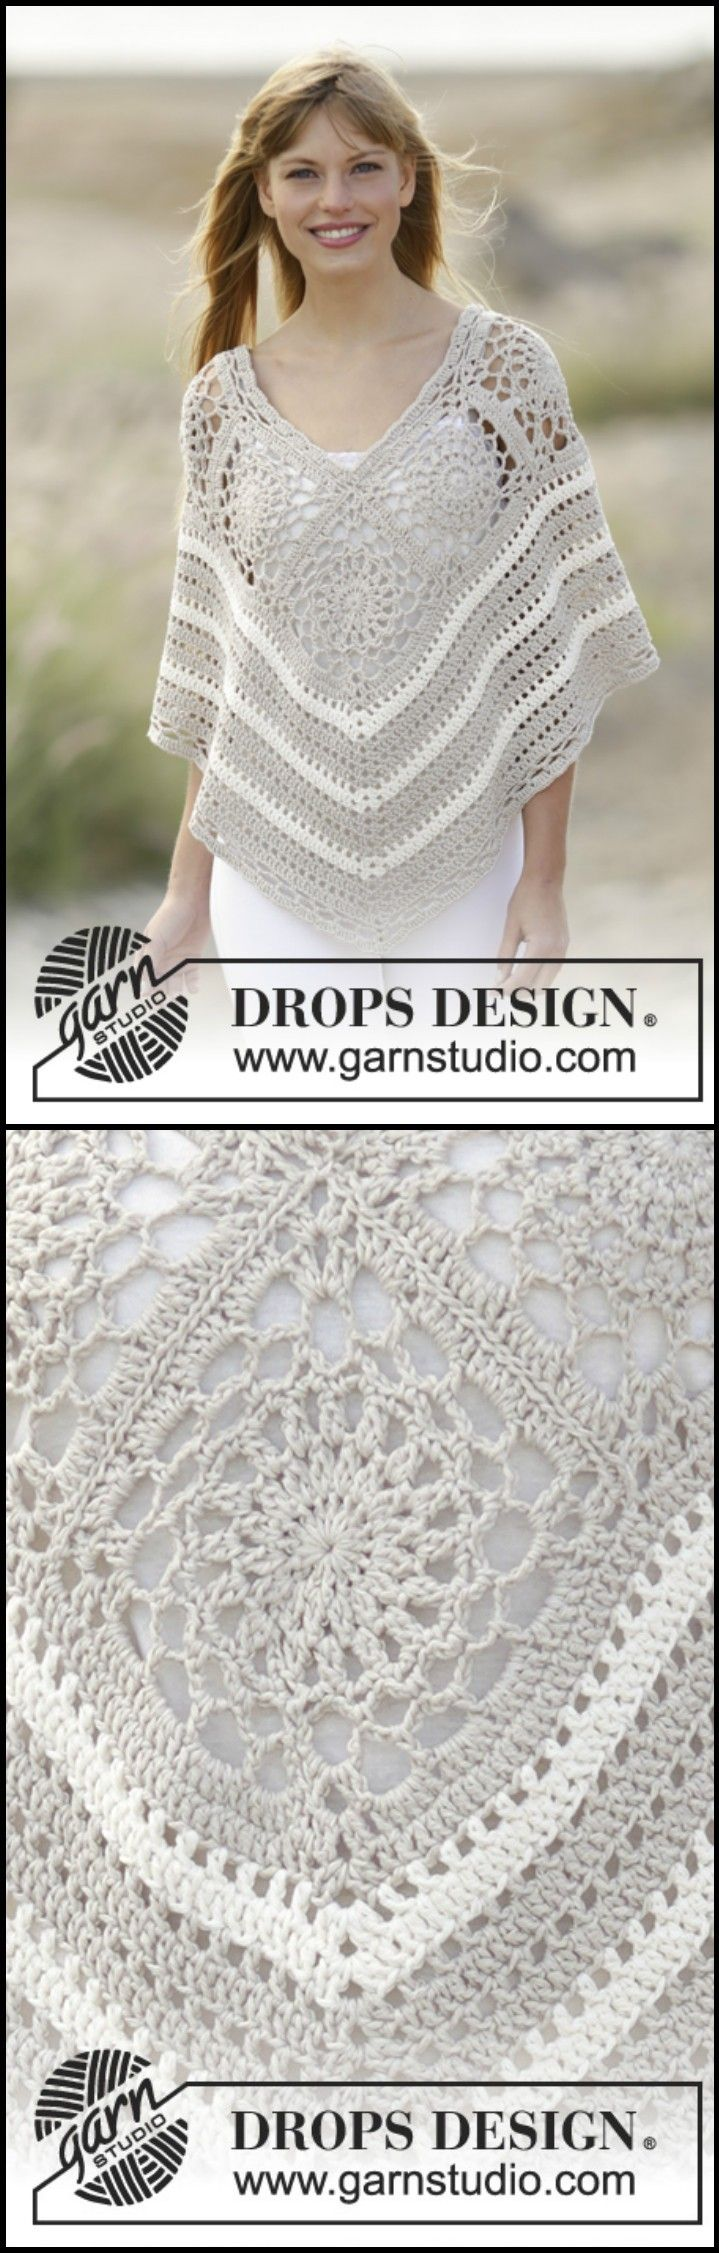 50 Free Crochet Poncho Patterns for All | Ponchos, De encaje y Ganchillo